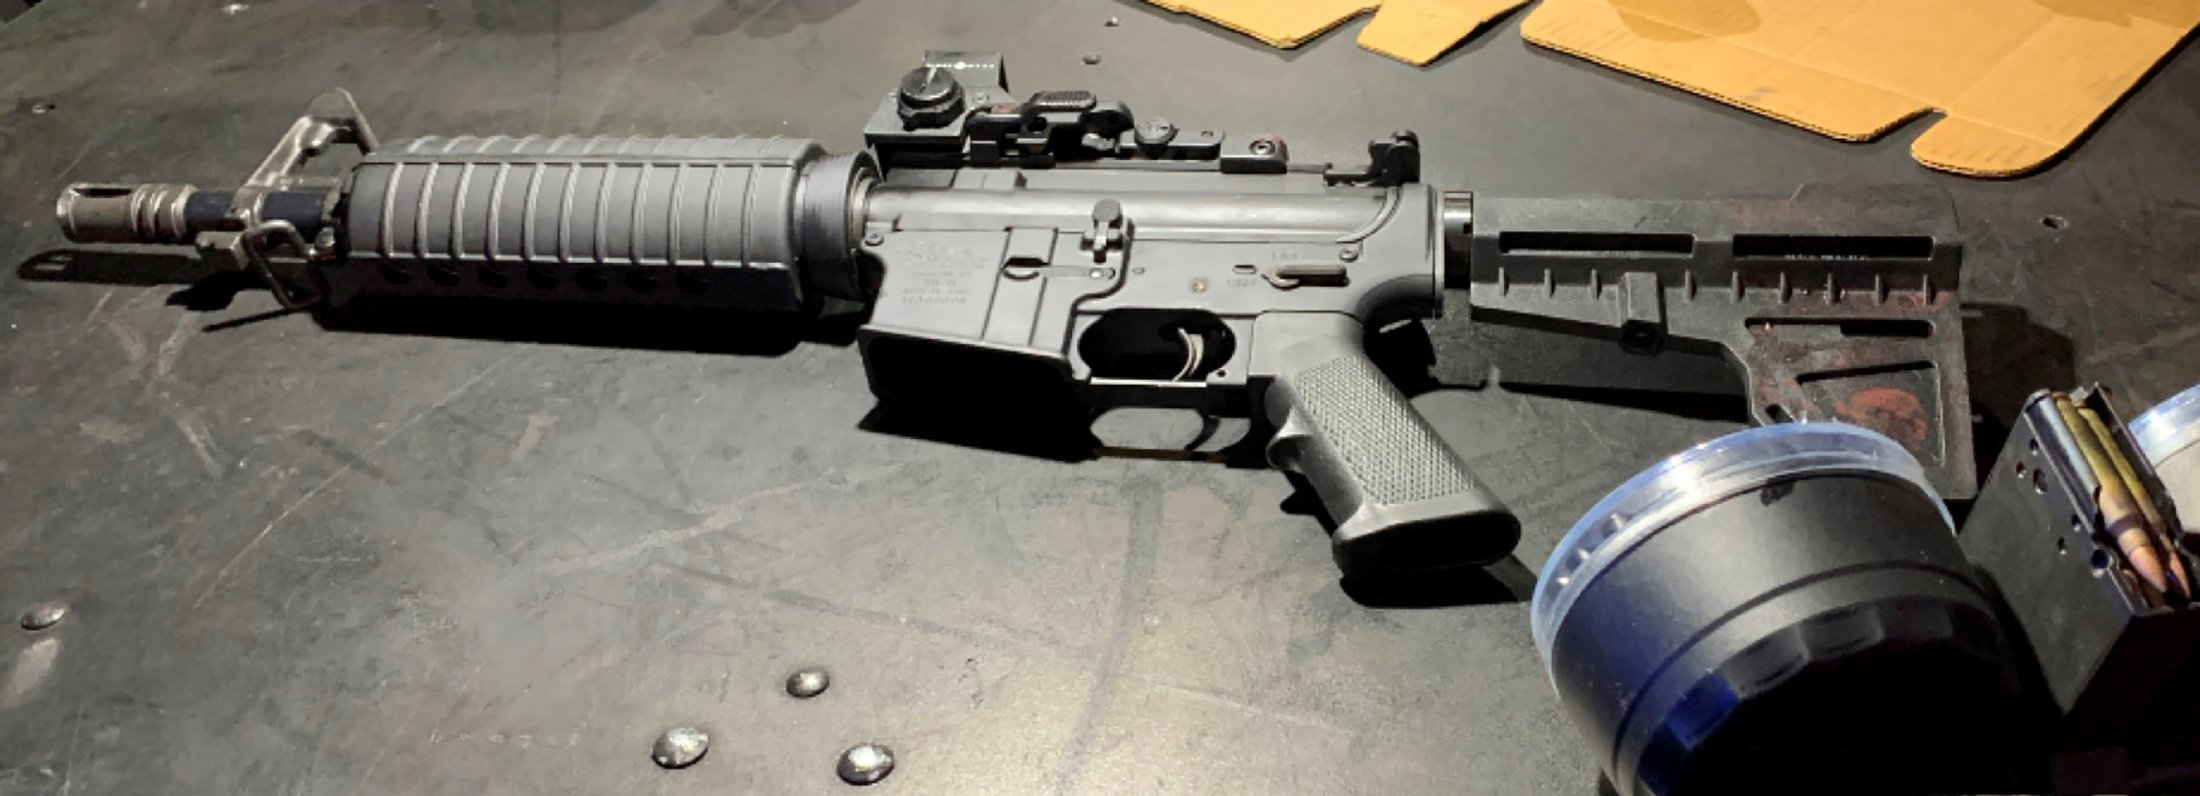 Dayton shooter's gun is the reason he killed 9 in 30 seconds